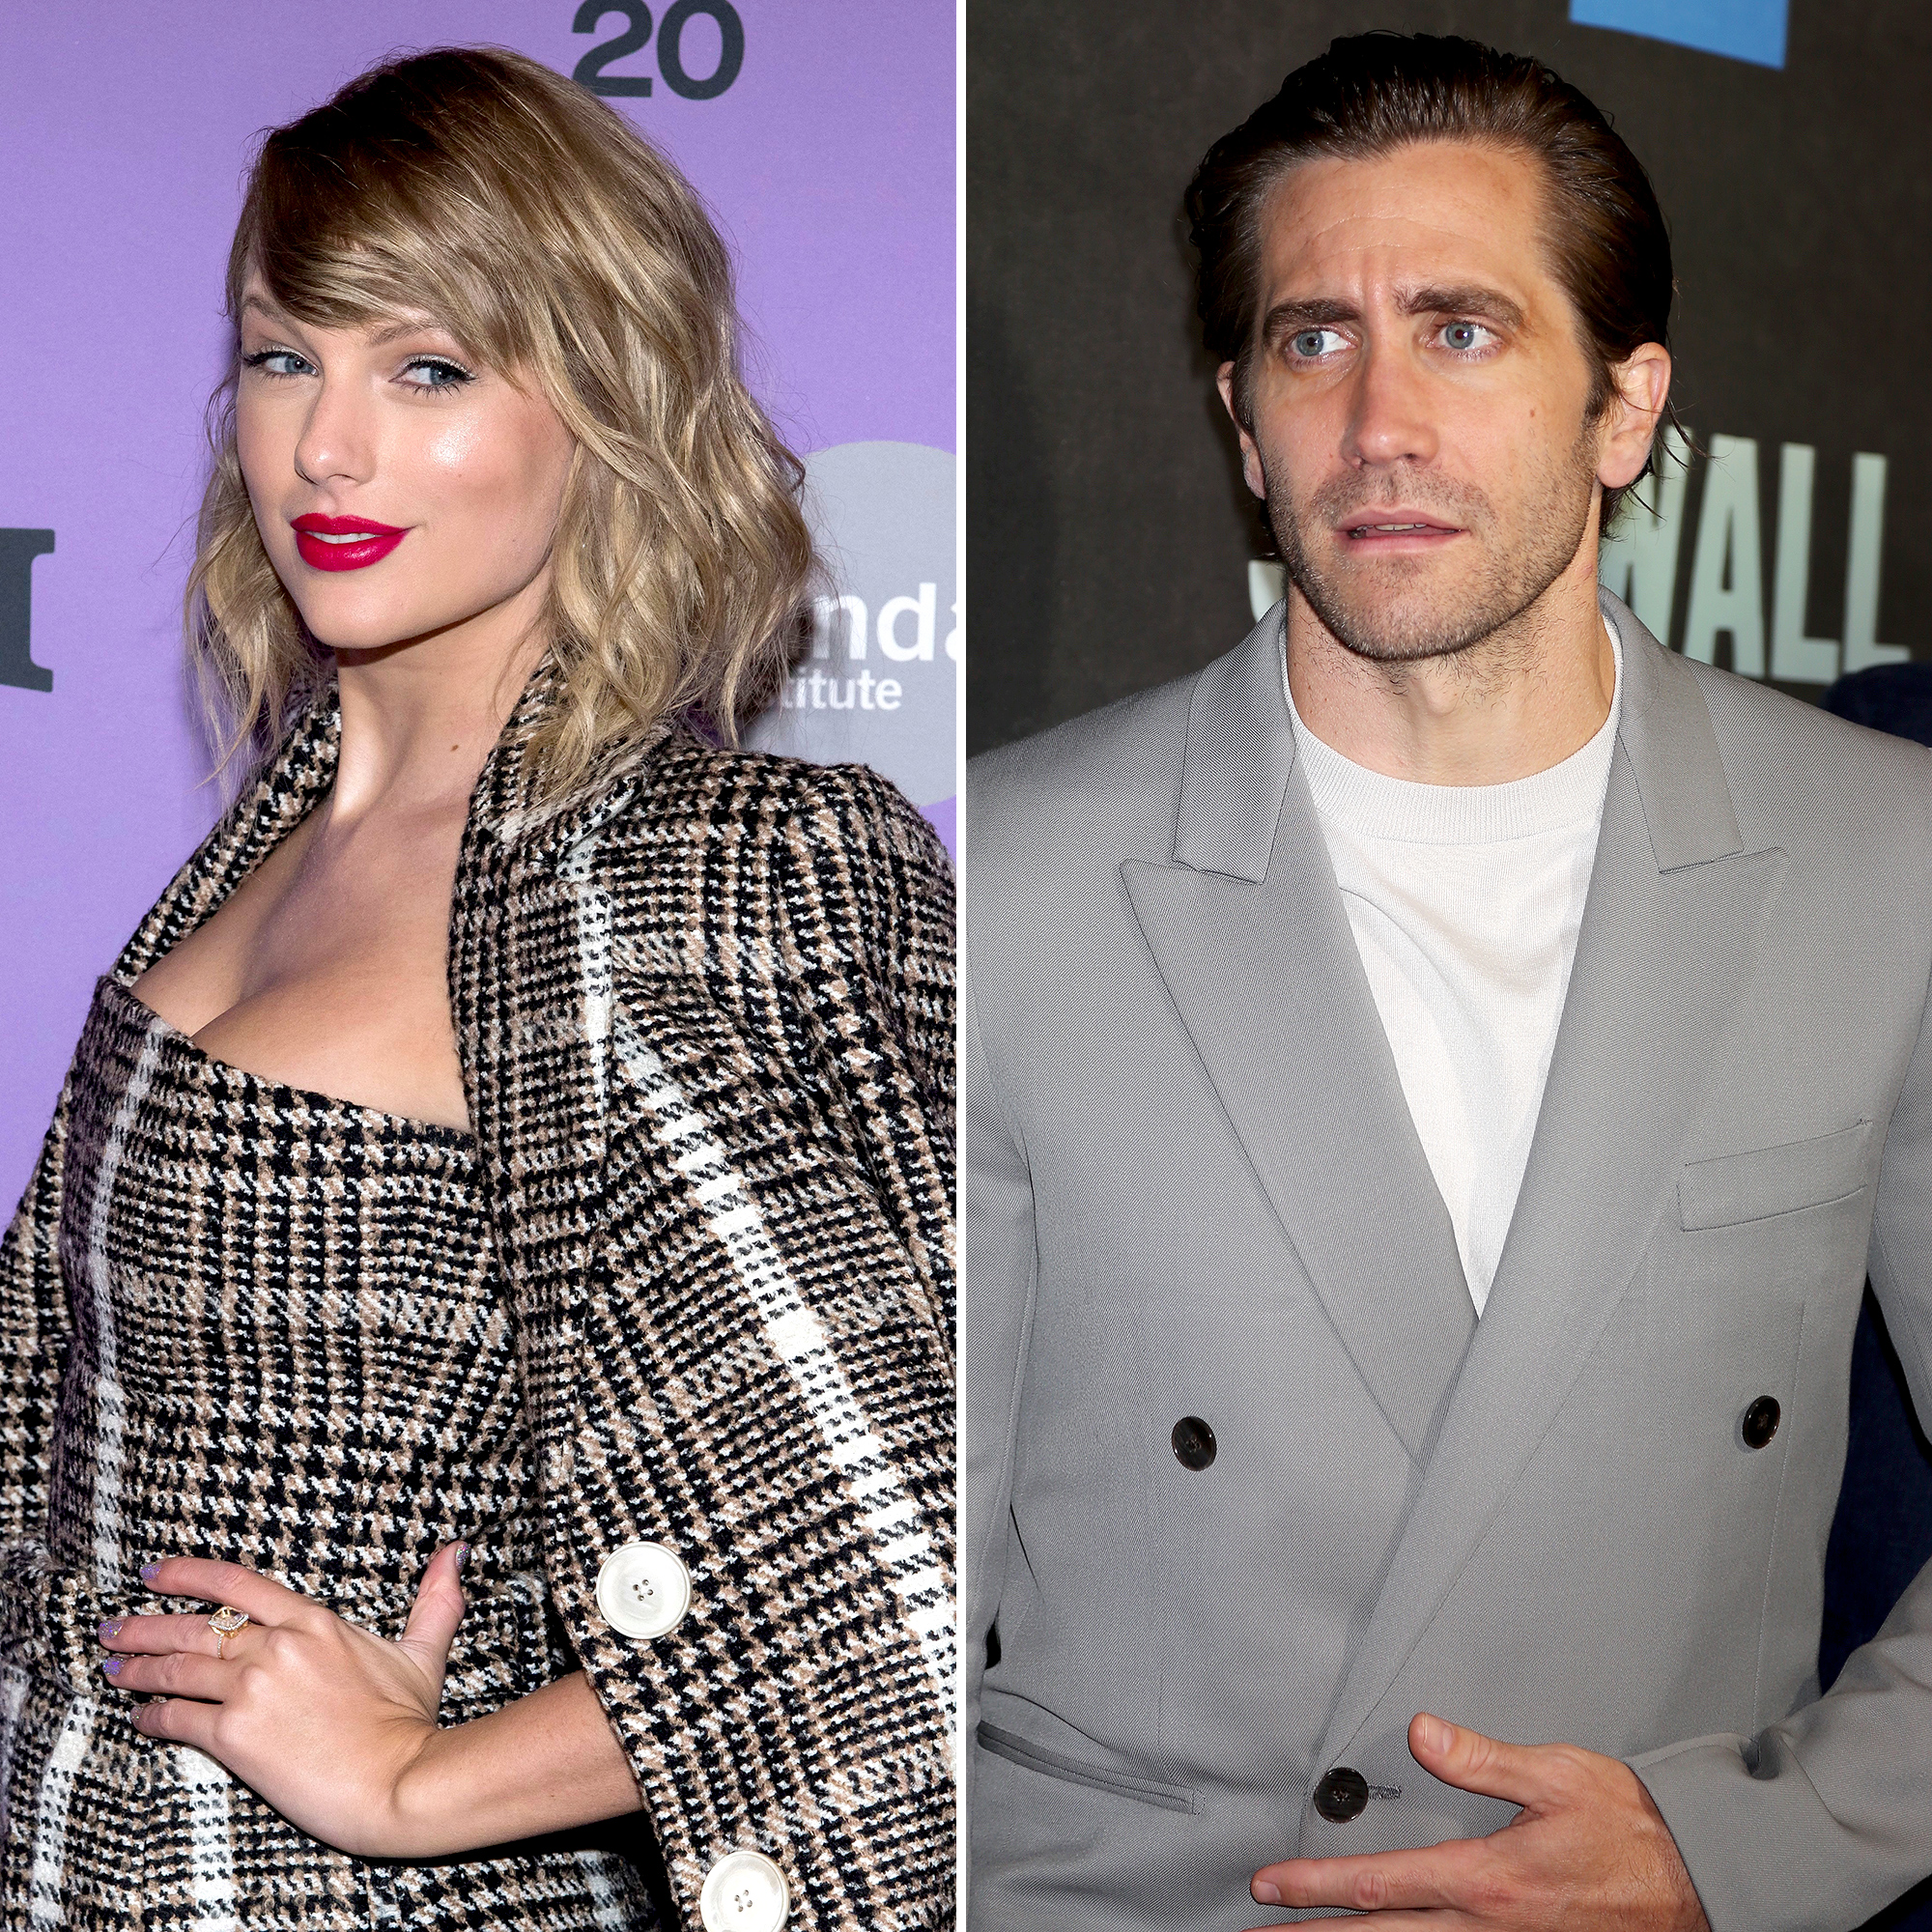 Taylor Swift Fans Flood Jake Gyllenhaal S Instagram With Lyrics